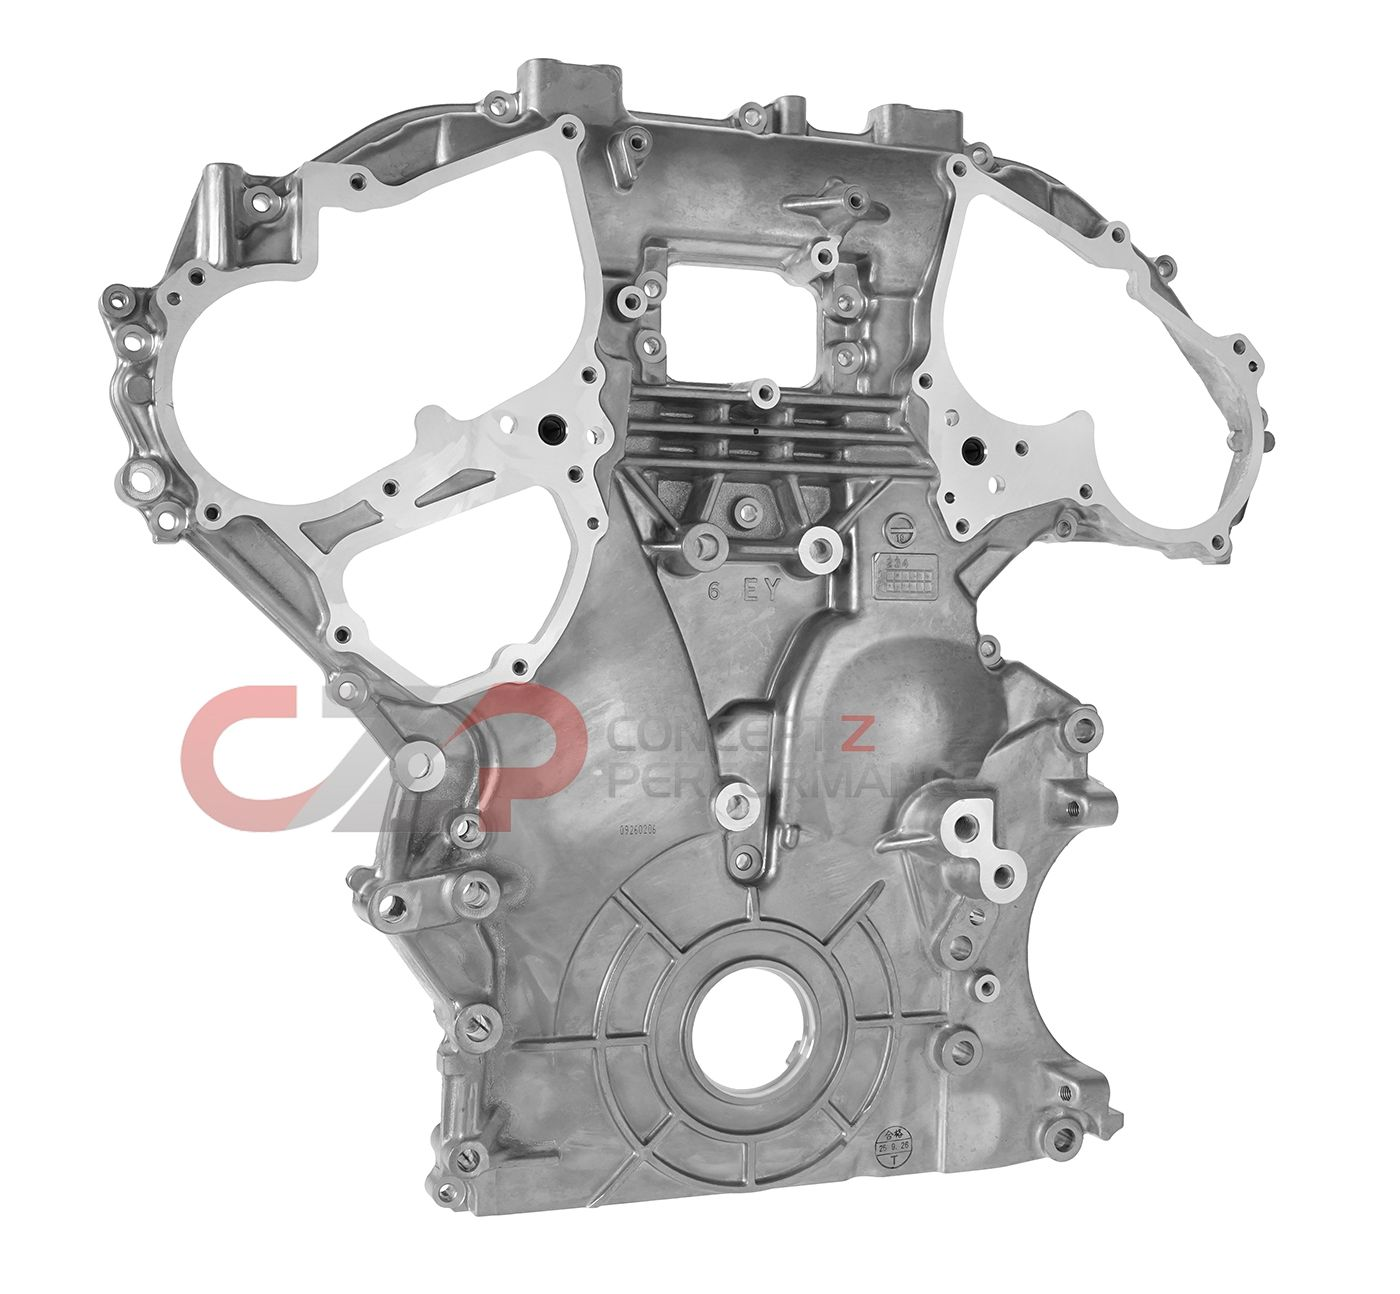 Engine Concept Z Performance 370z Diagram Nissan Oem Timing Chain Cover Front Vq35hr Vq37vhr Up To 10 13